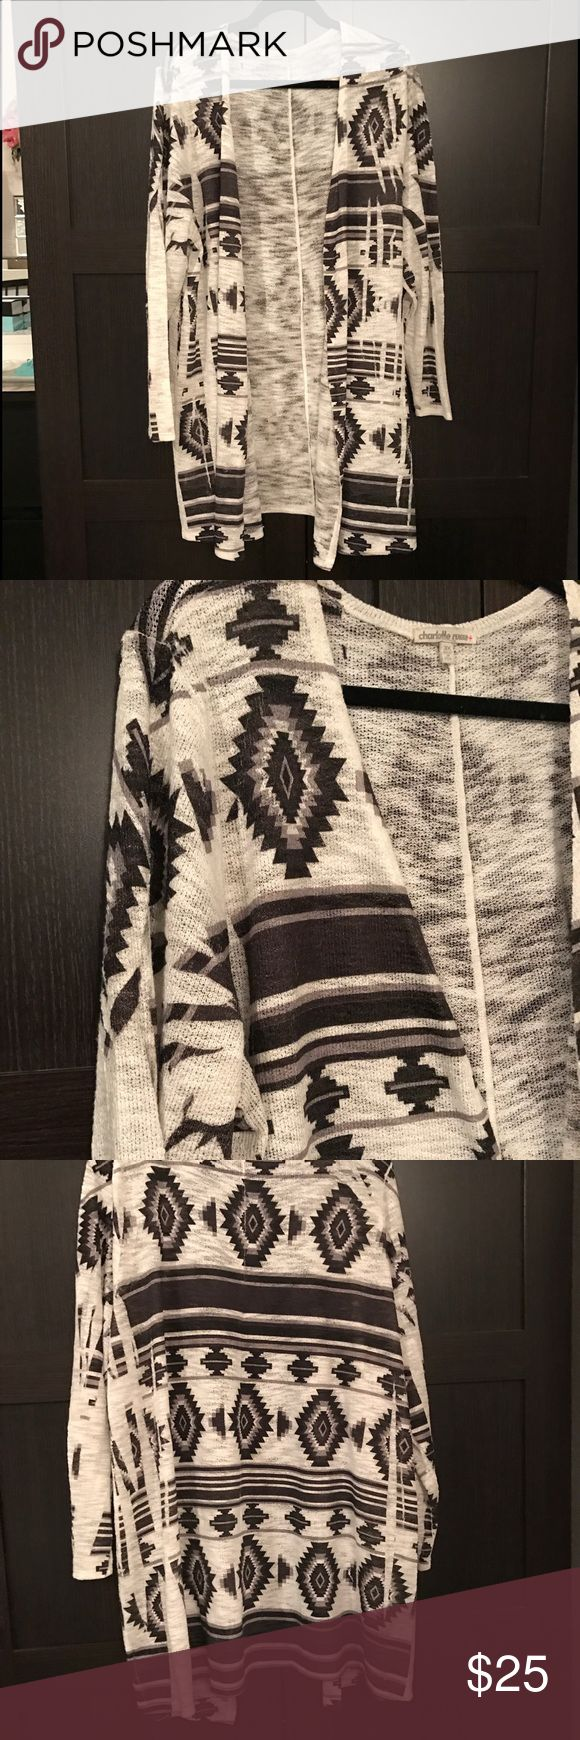 Charlotte Russe tribal sweater Charlotte Russe cardigan sweater with a grey tribal print on cream background Charlotte Russe Sweaters Cardigans